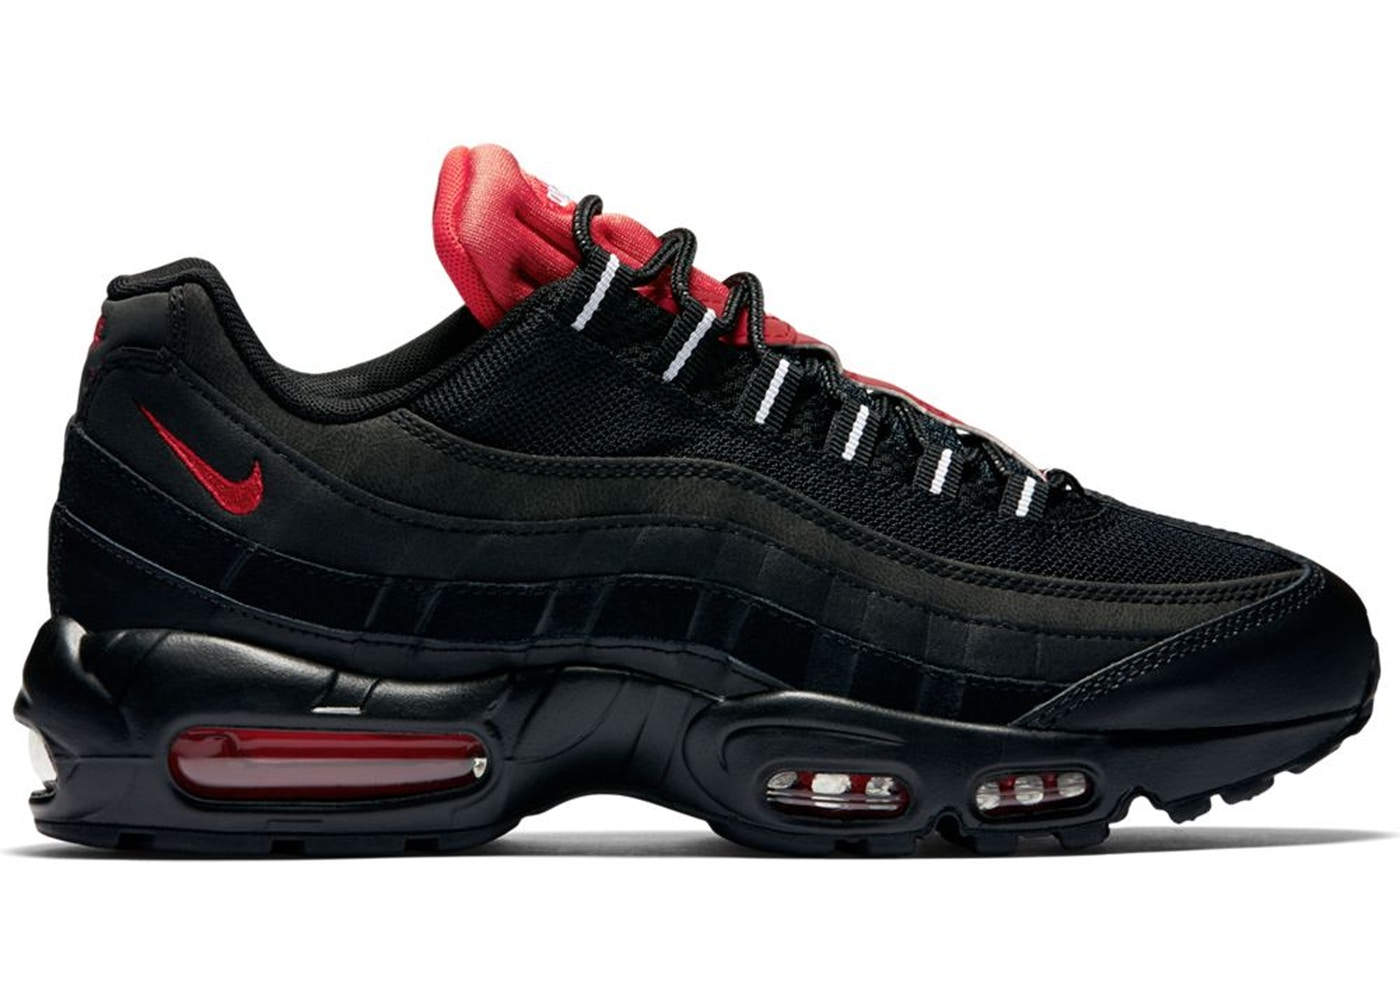 competitive price 9b52e 17135 Air Max 95 Black Challenge Red - 749766-016